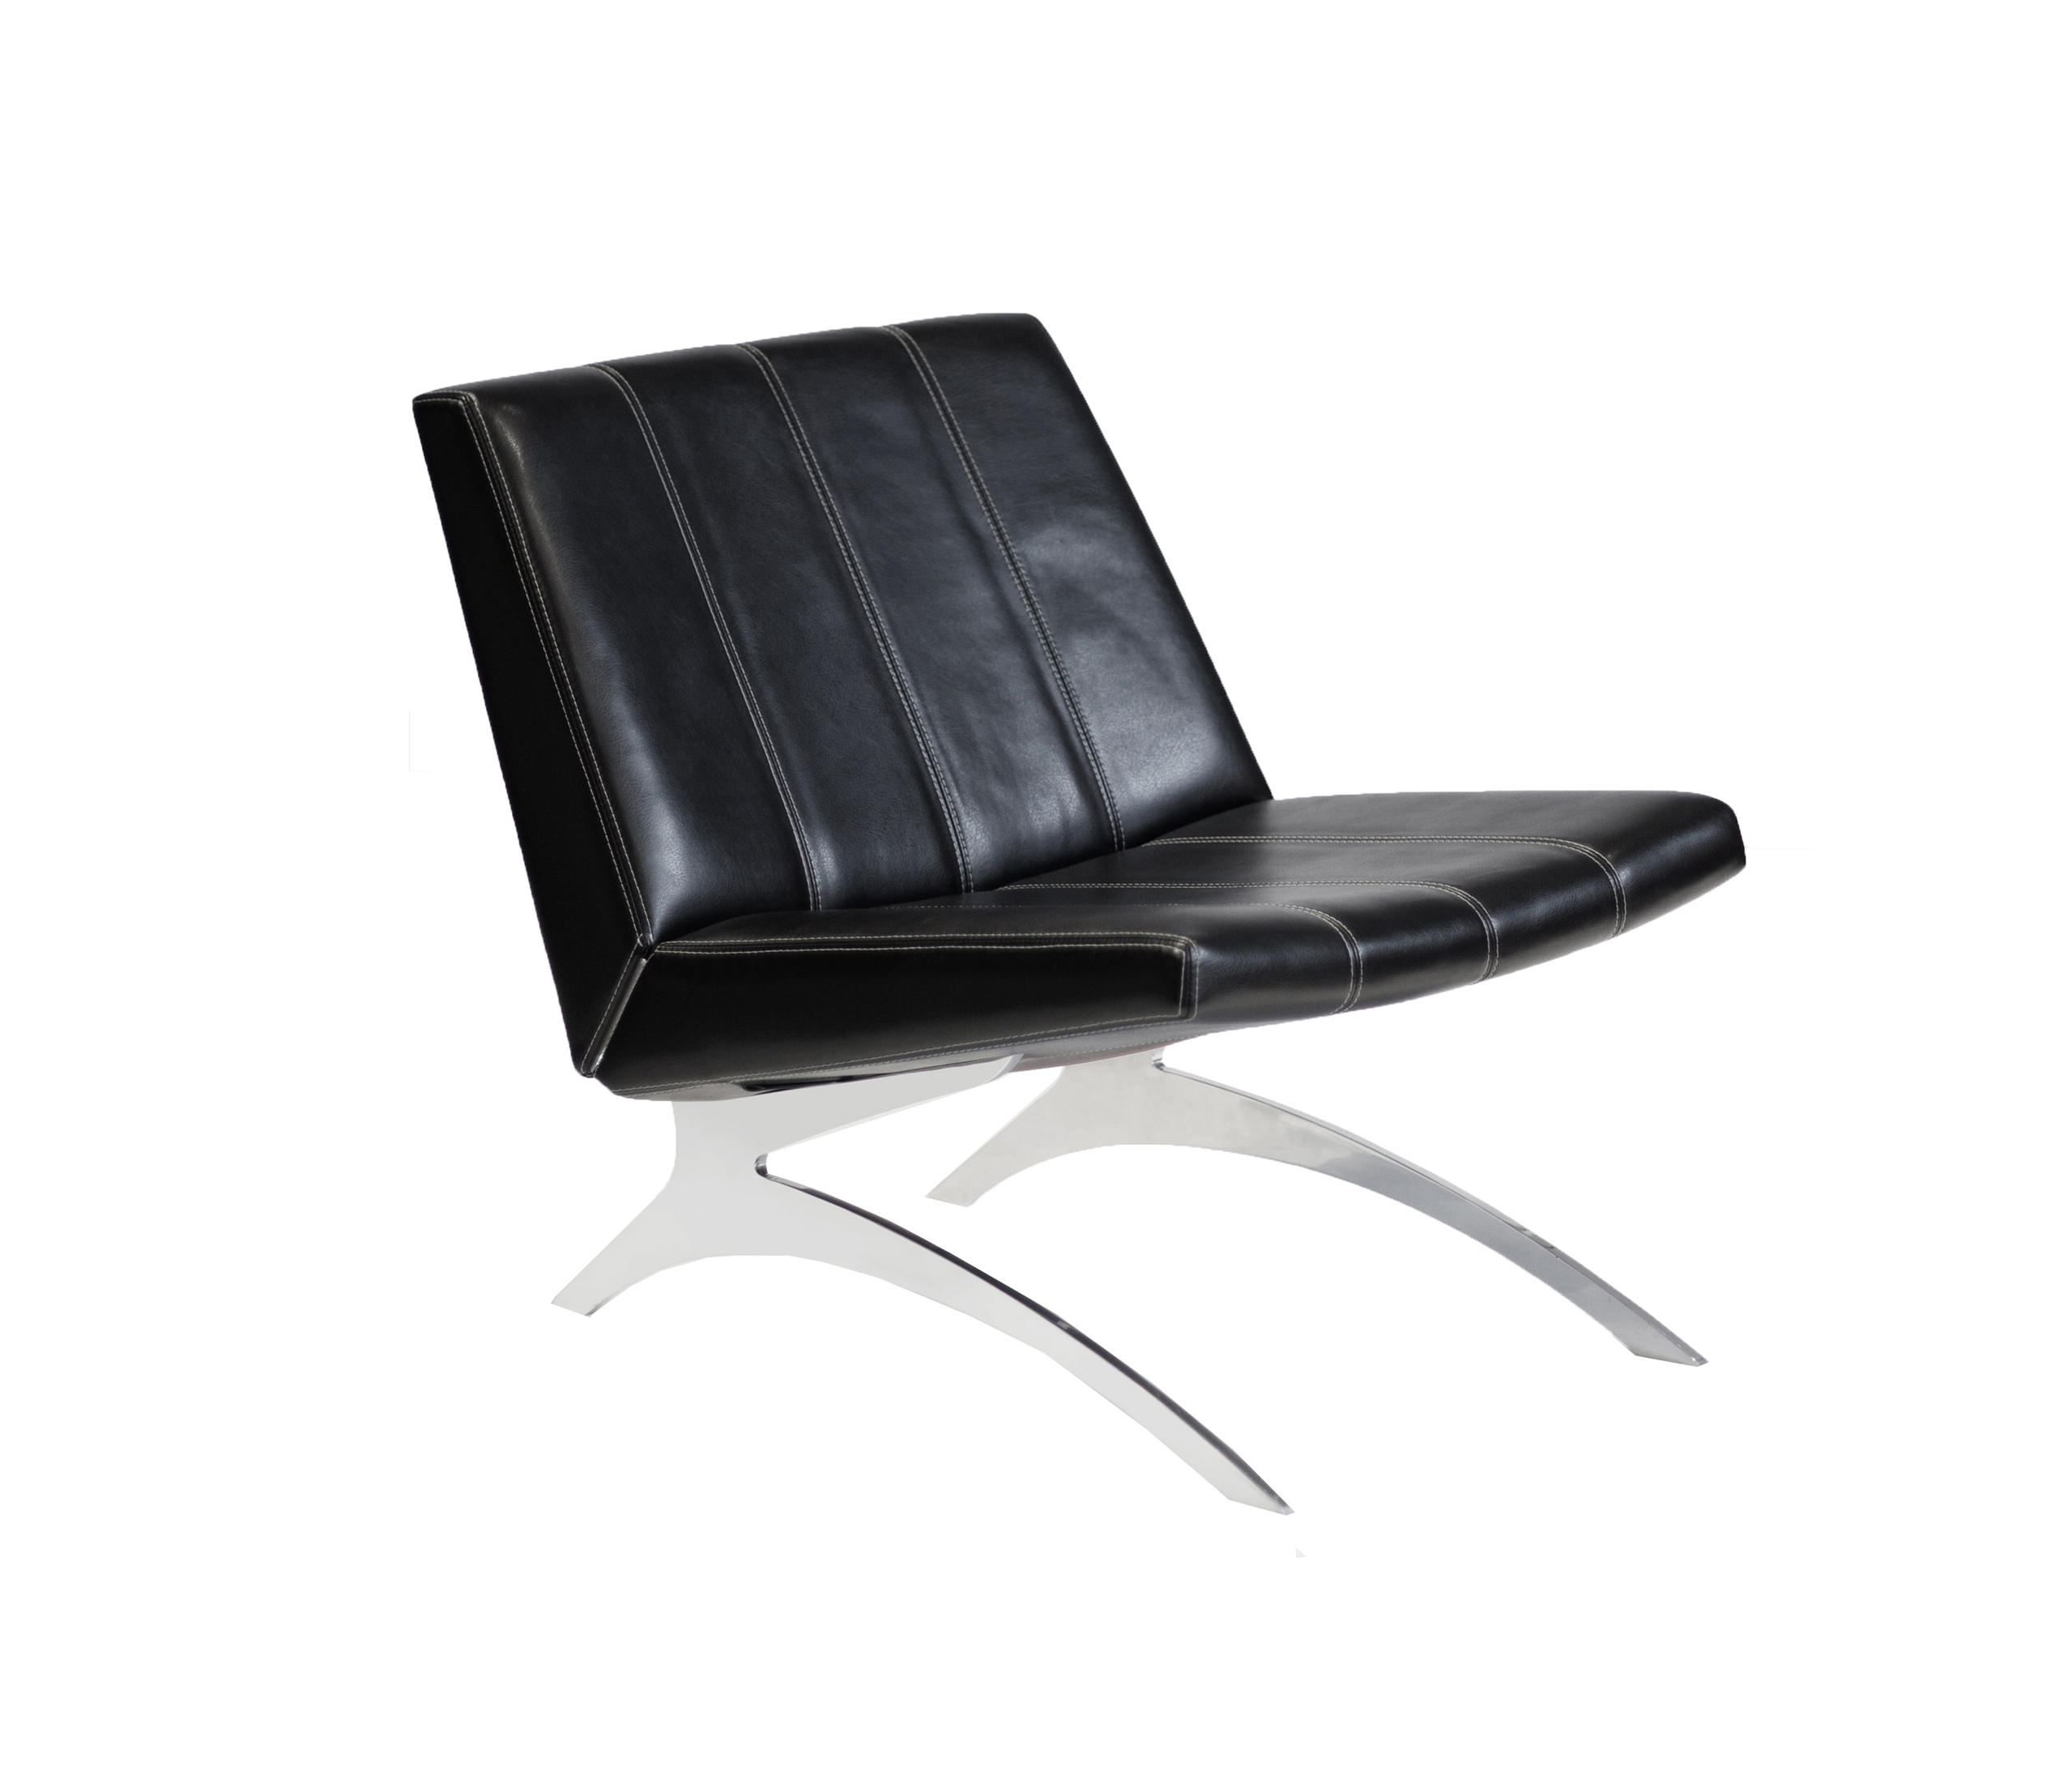 About A Chair 22 Armchair.Concord Chair Armchairs From Lounge 22 Architonic